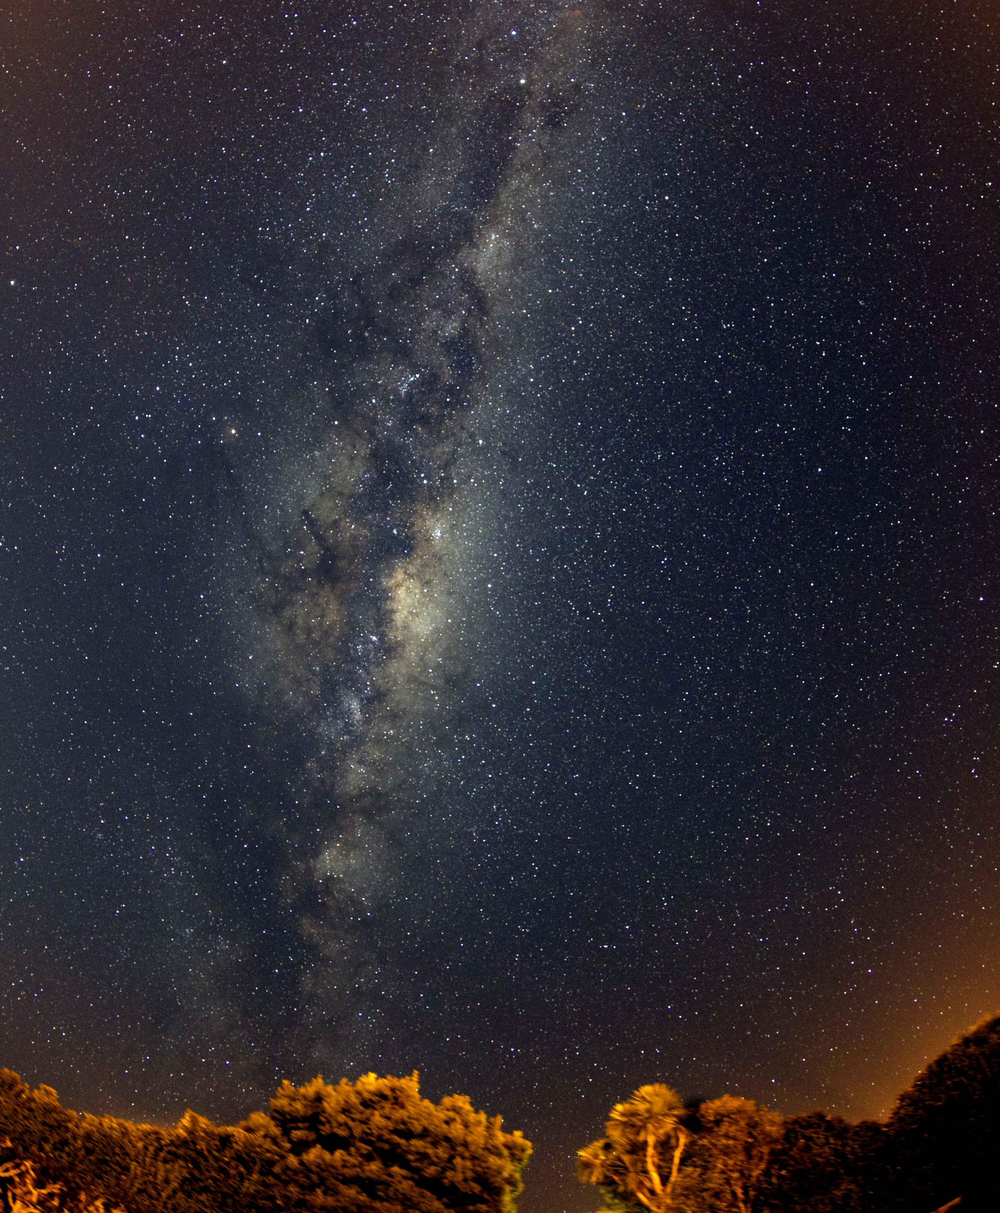 The Milky Way over Portobello, Dunedin. Image: Ian Griffin.